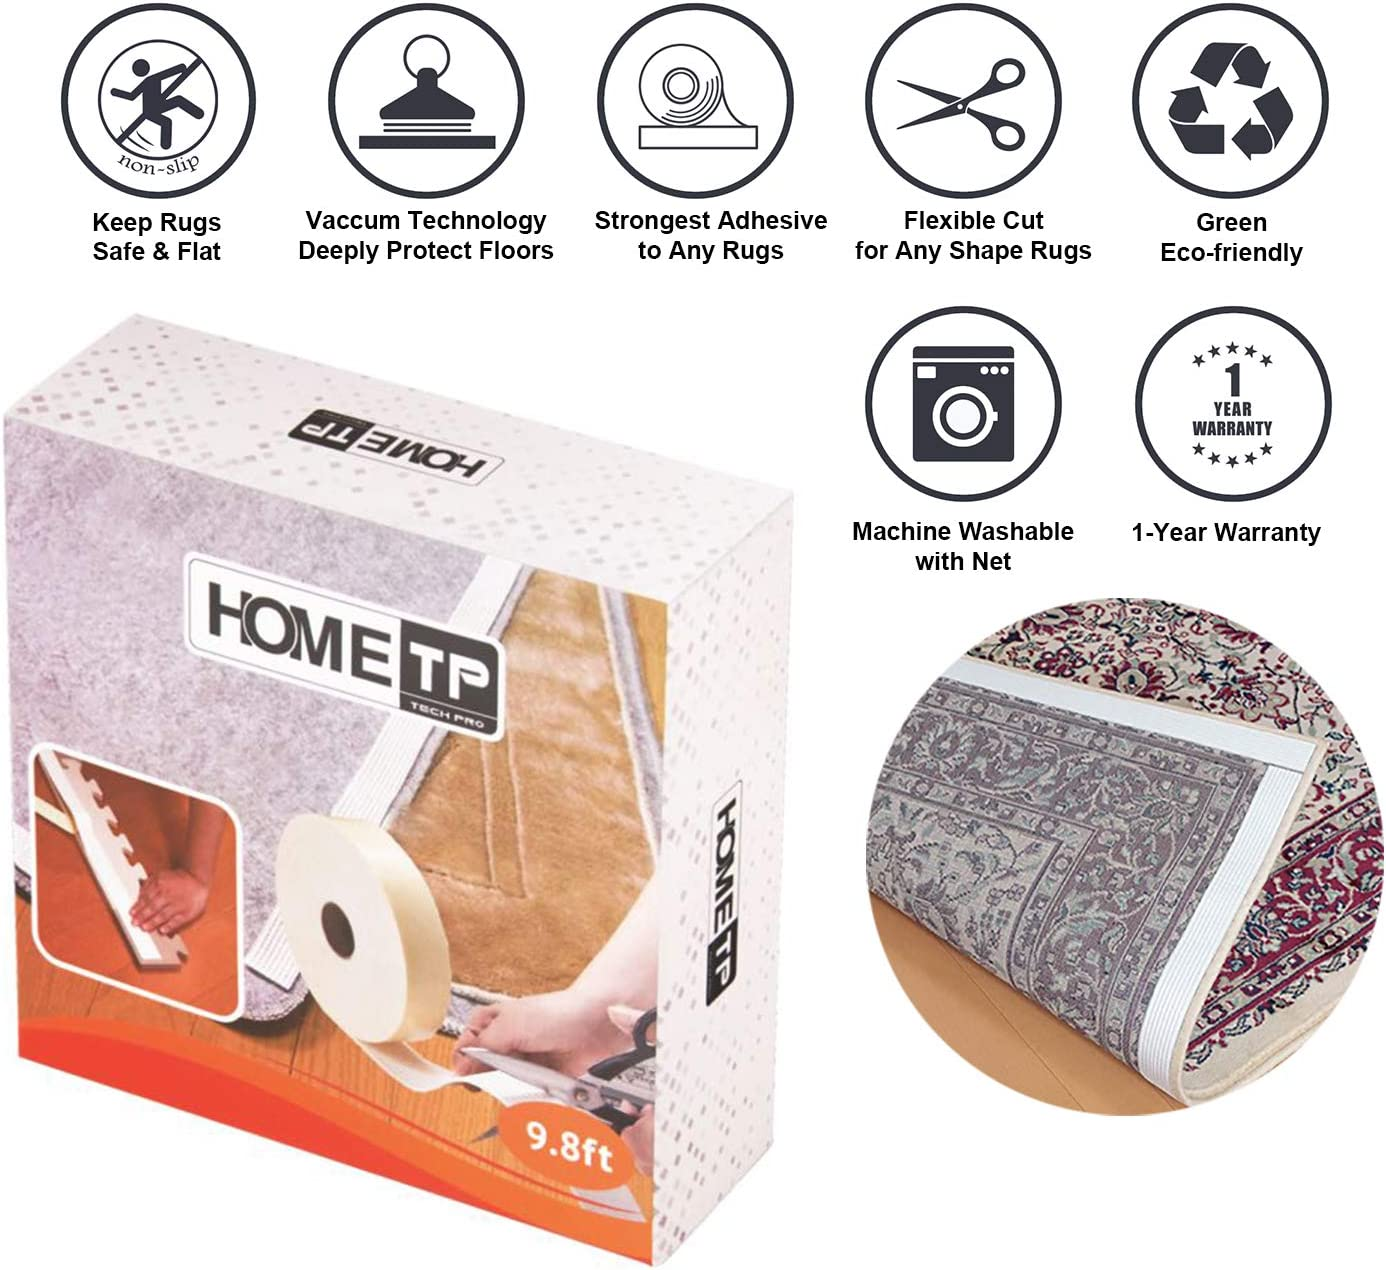 """Home Techpro Area Rug Gripper for Hardwood Floors, 9.8Ft Premium Washable Non-Slip Rug Grippers """"Vacuum Tech"""" -New Materials to Anti Curling : Keep Your Rugs in Place and Make Corner Flat"""